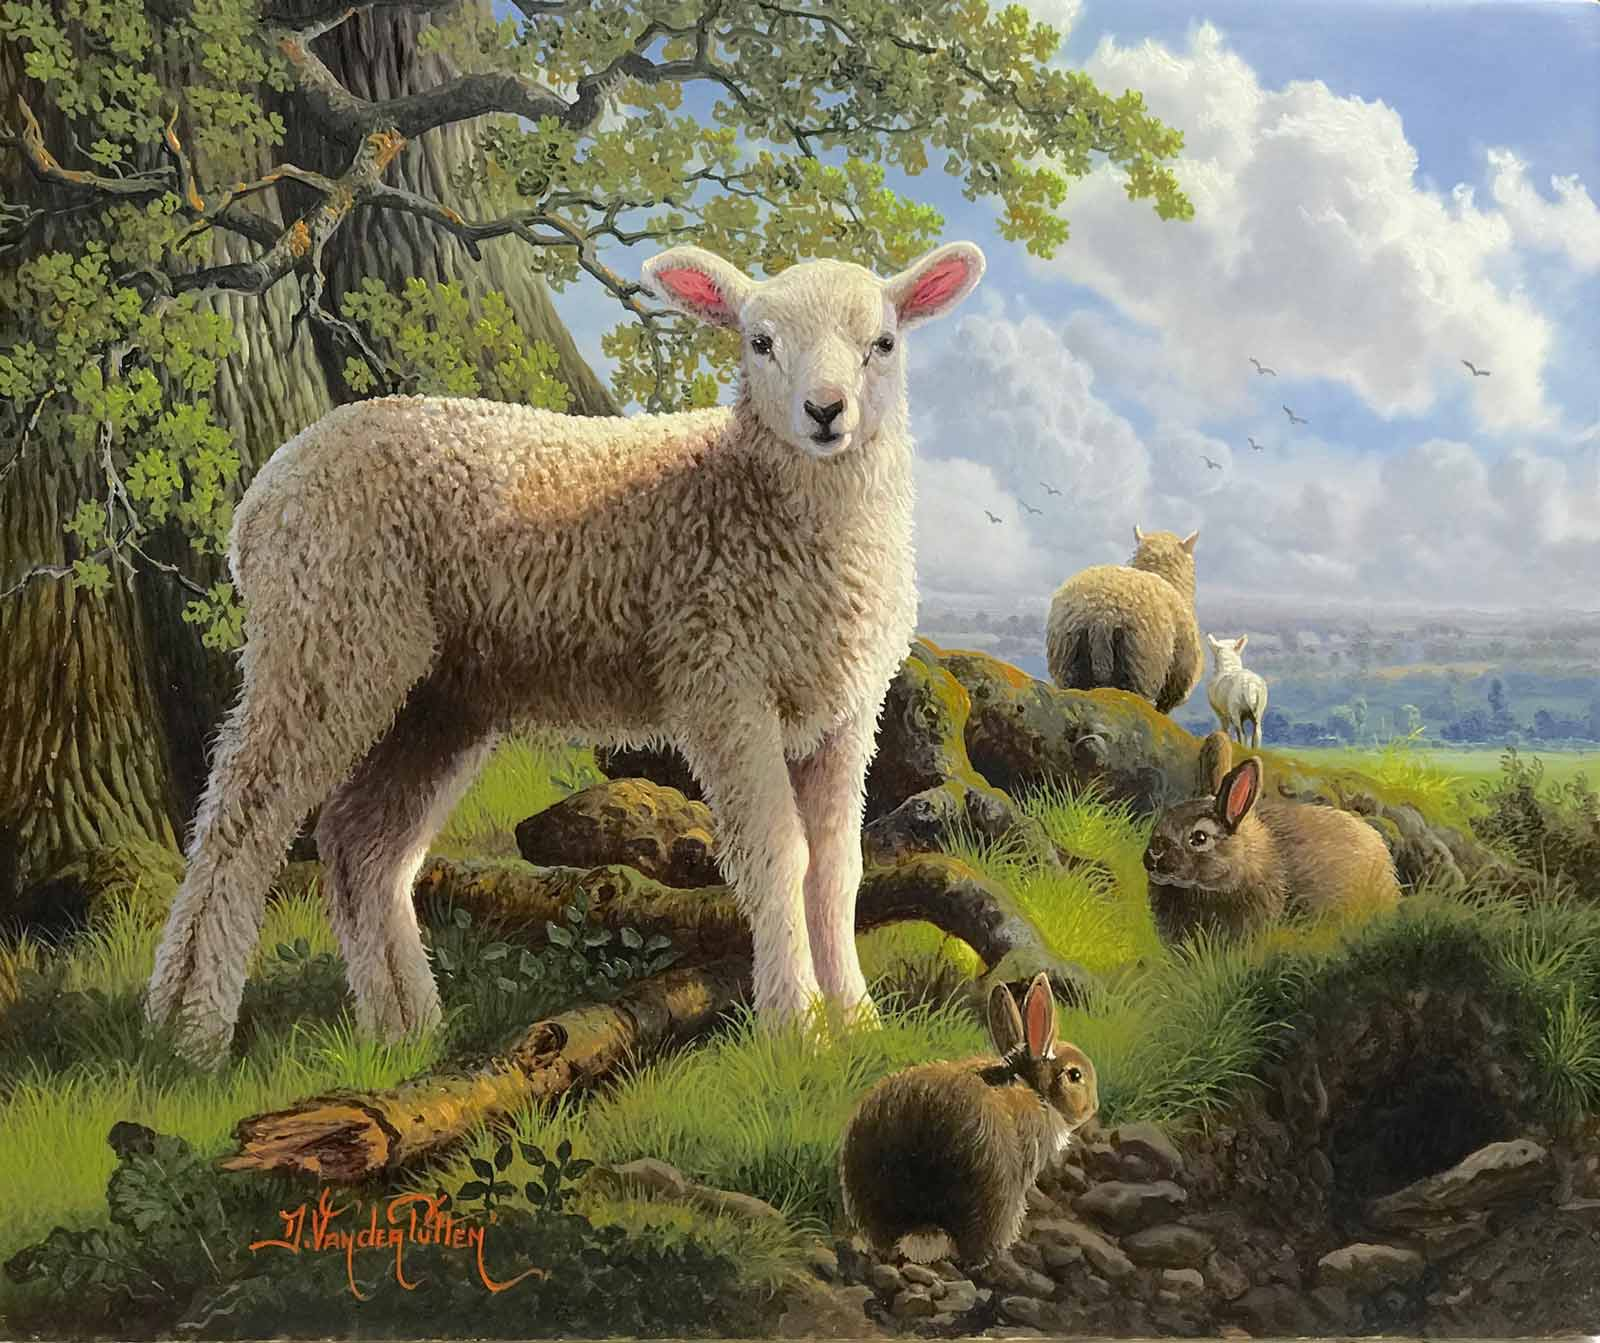 Spring Lamb and Friends, Daniel Van der Putten